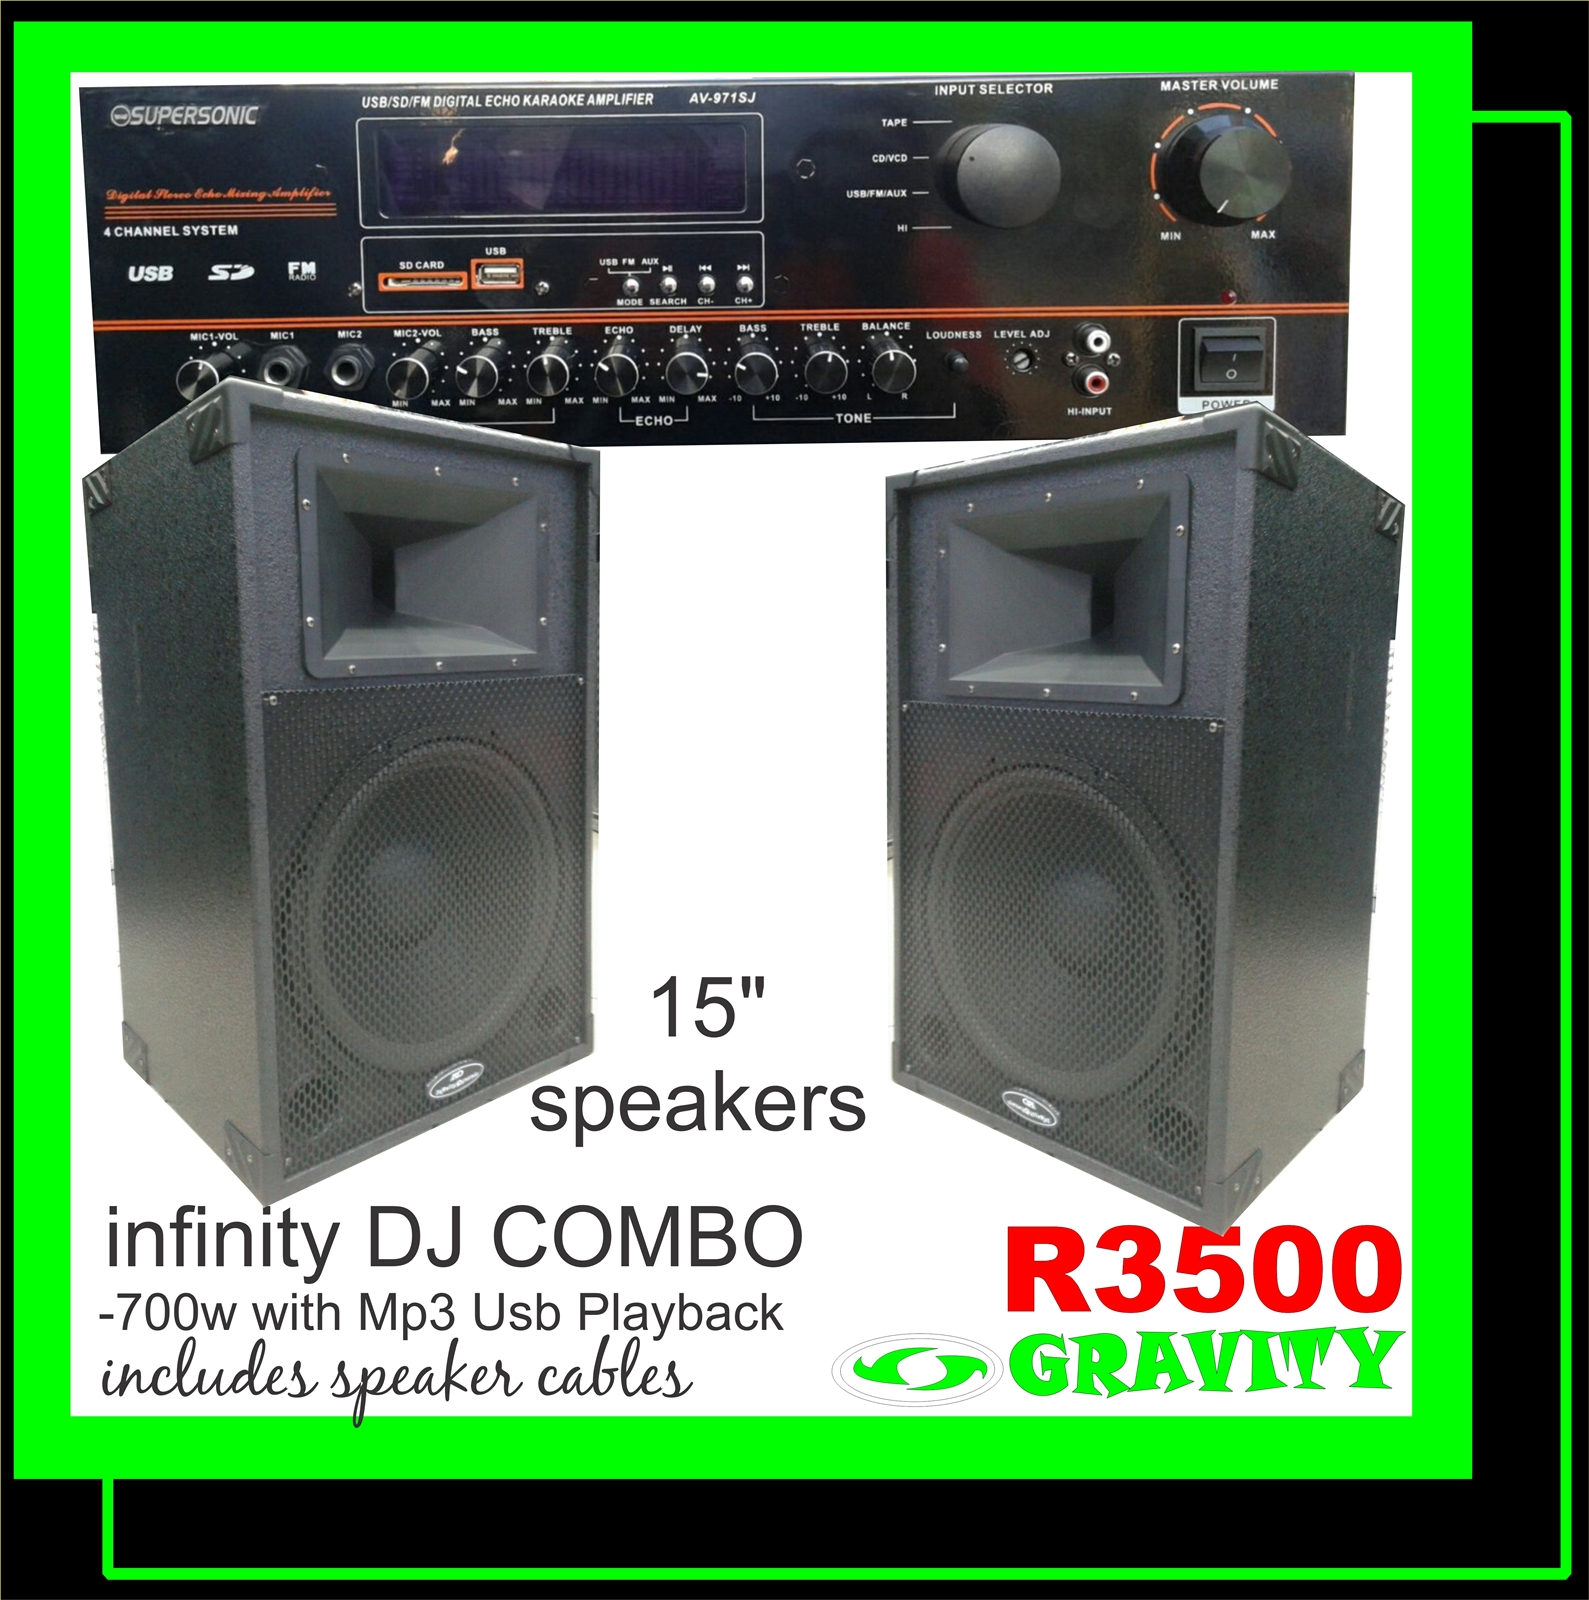 supersonic dj combo for sale at gravity dj store omega 15inch combo infinity dynamic disco speaker combo set gravity audio sound shop